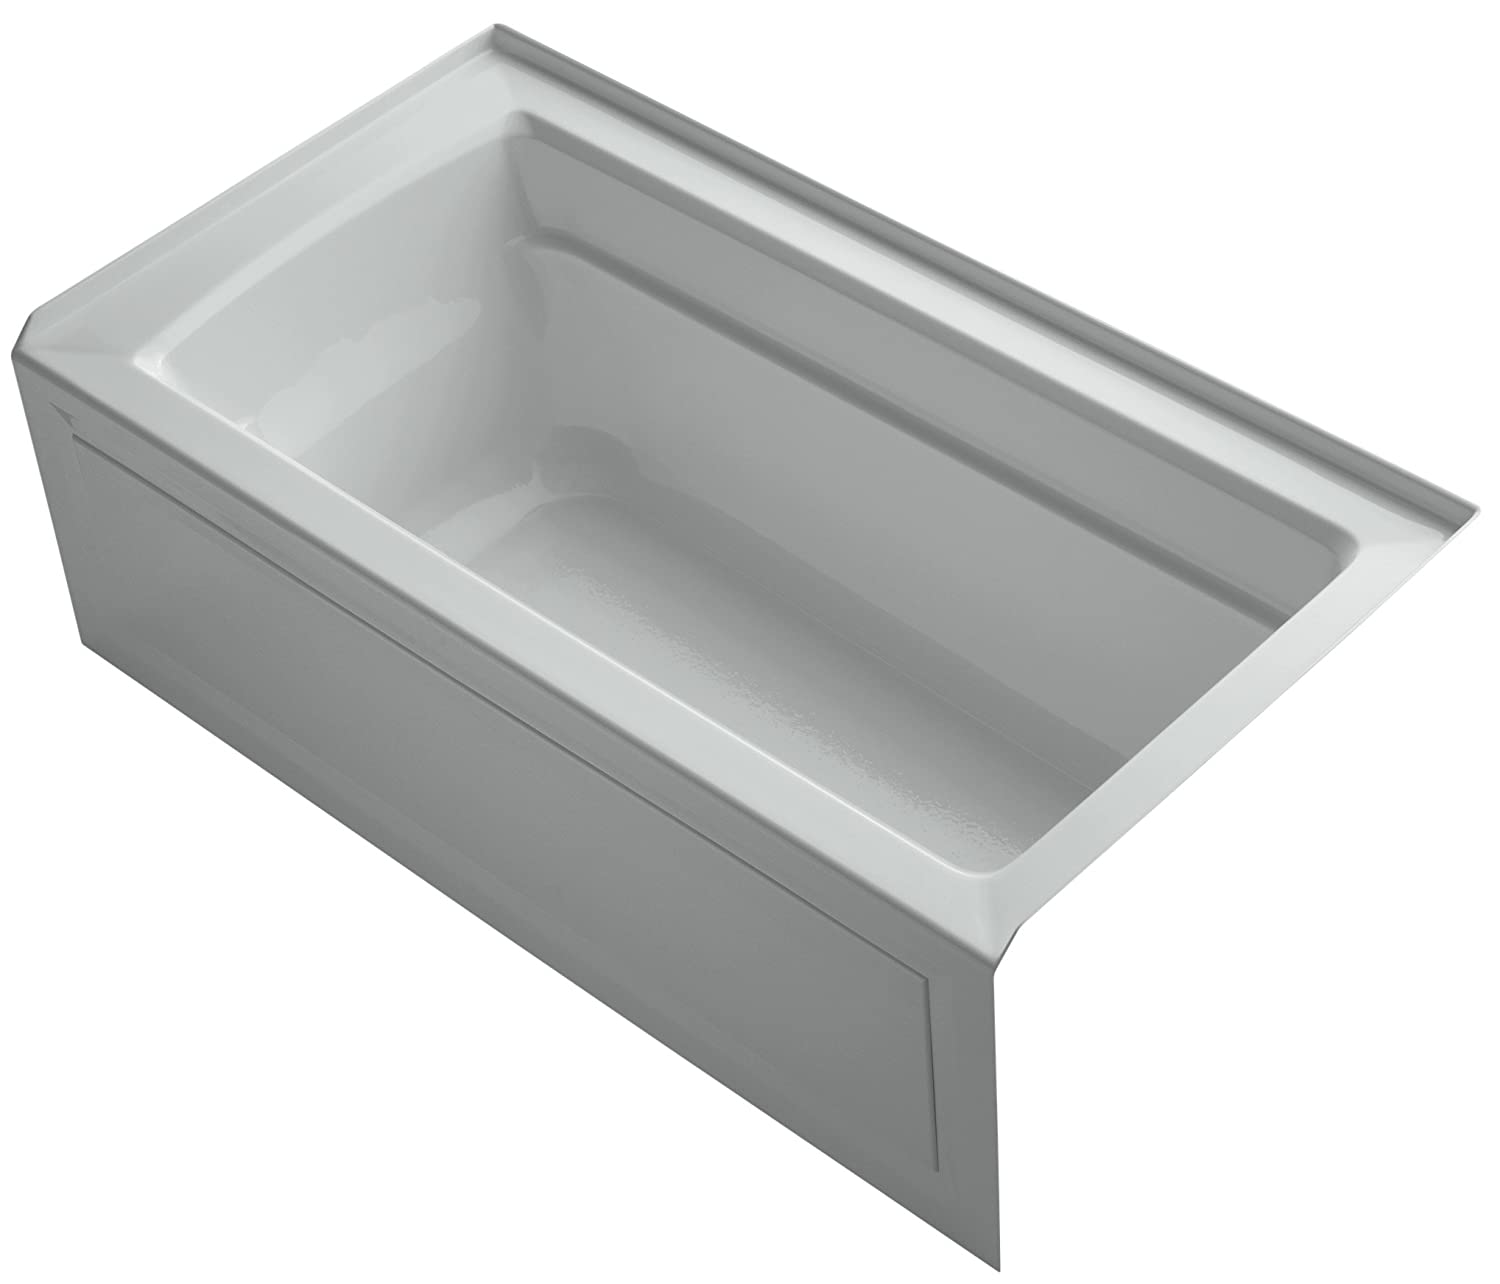 KOHLER K-1123-RA-95 Archer 5-Foot Bath with Comfort Depth Design, Integral Apron and Right-Hand Drain, Ice Grey